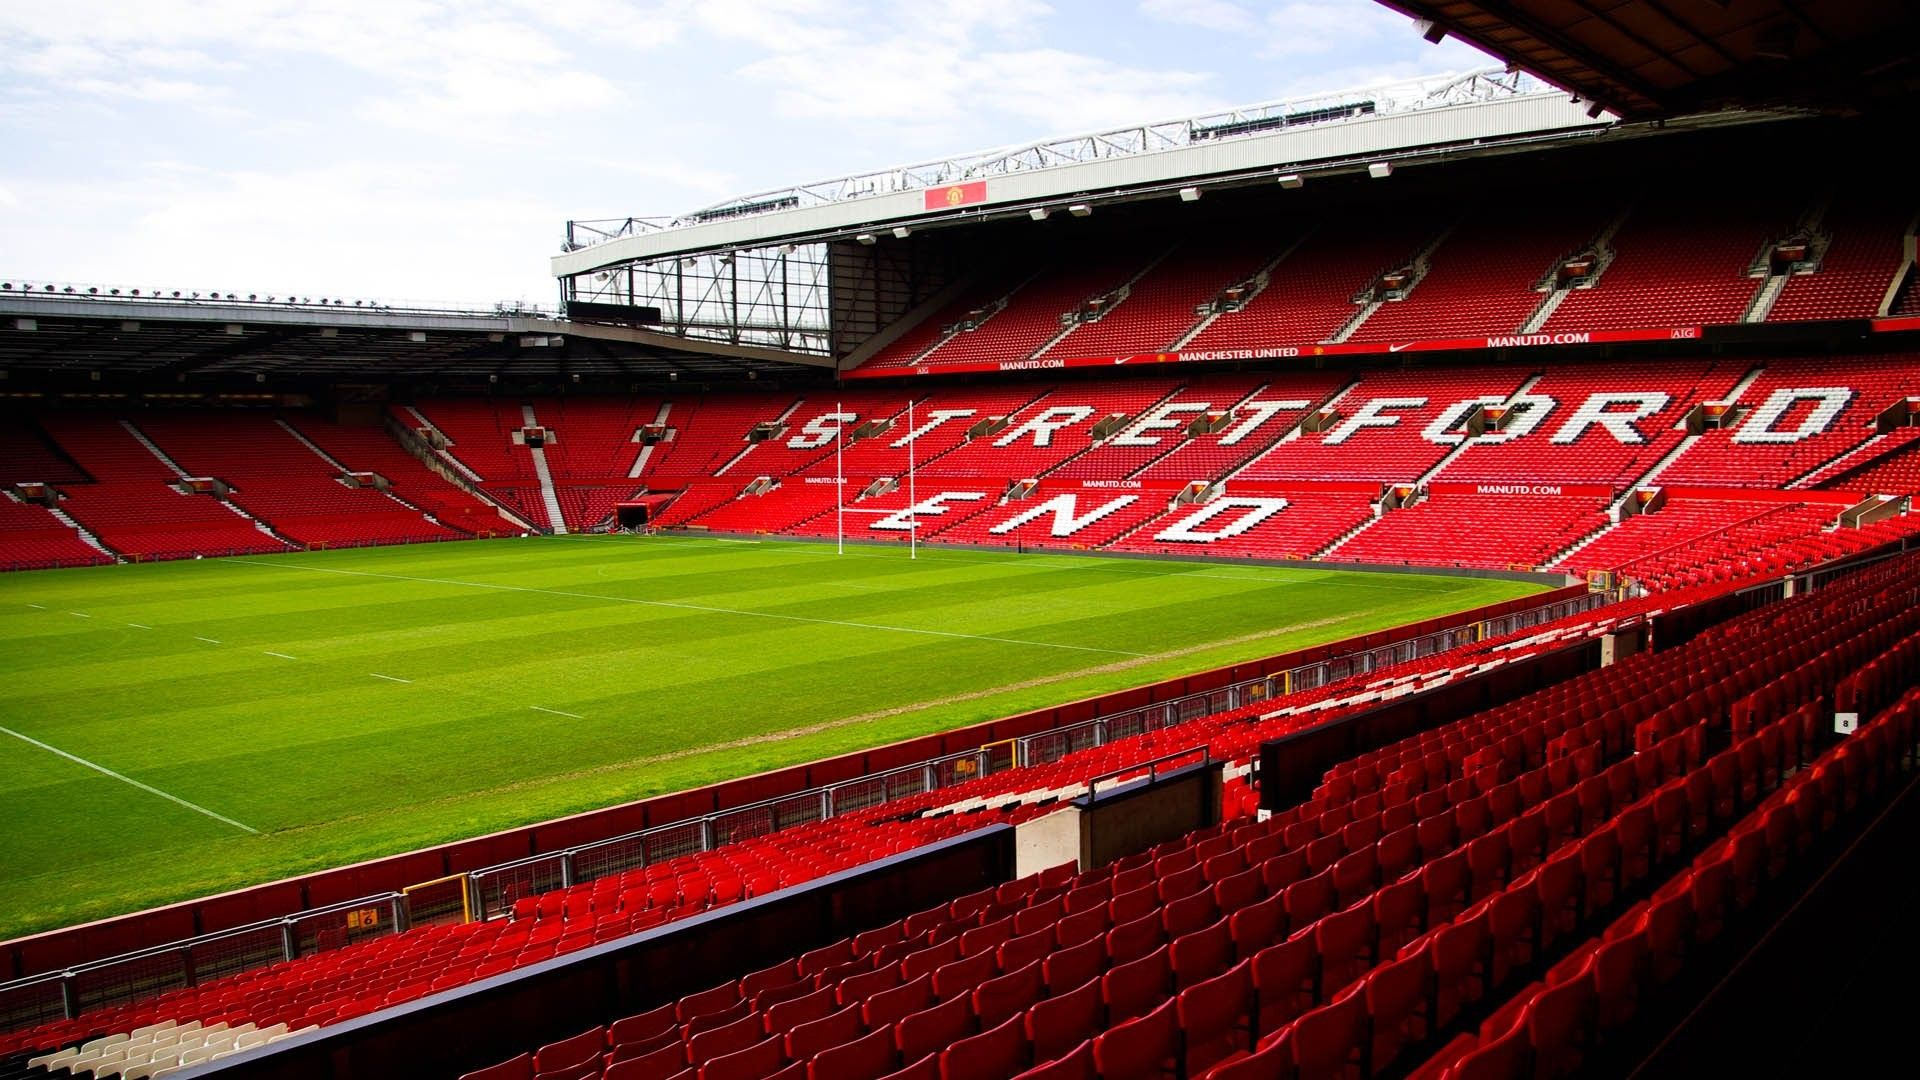 Old Trafford Hd Wallpapers For Desktop In 2020 Manchester United Wallpaper Old Trafford Trafford